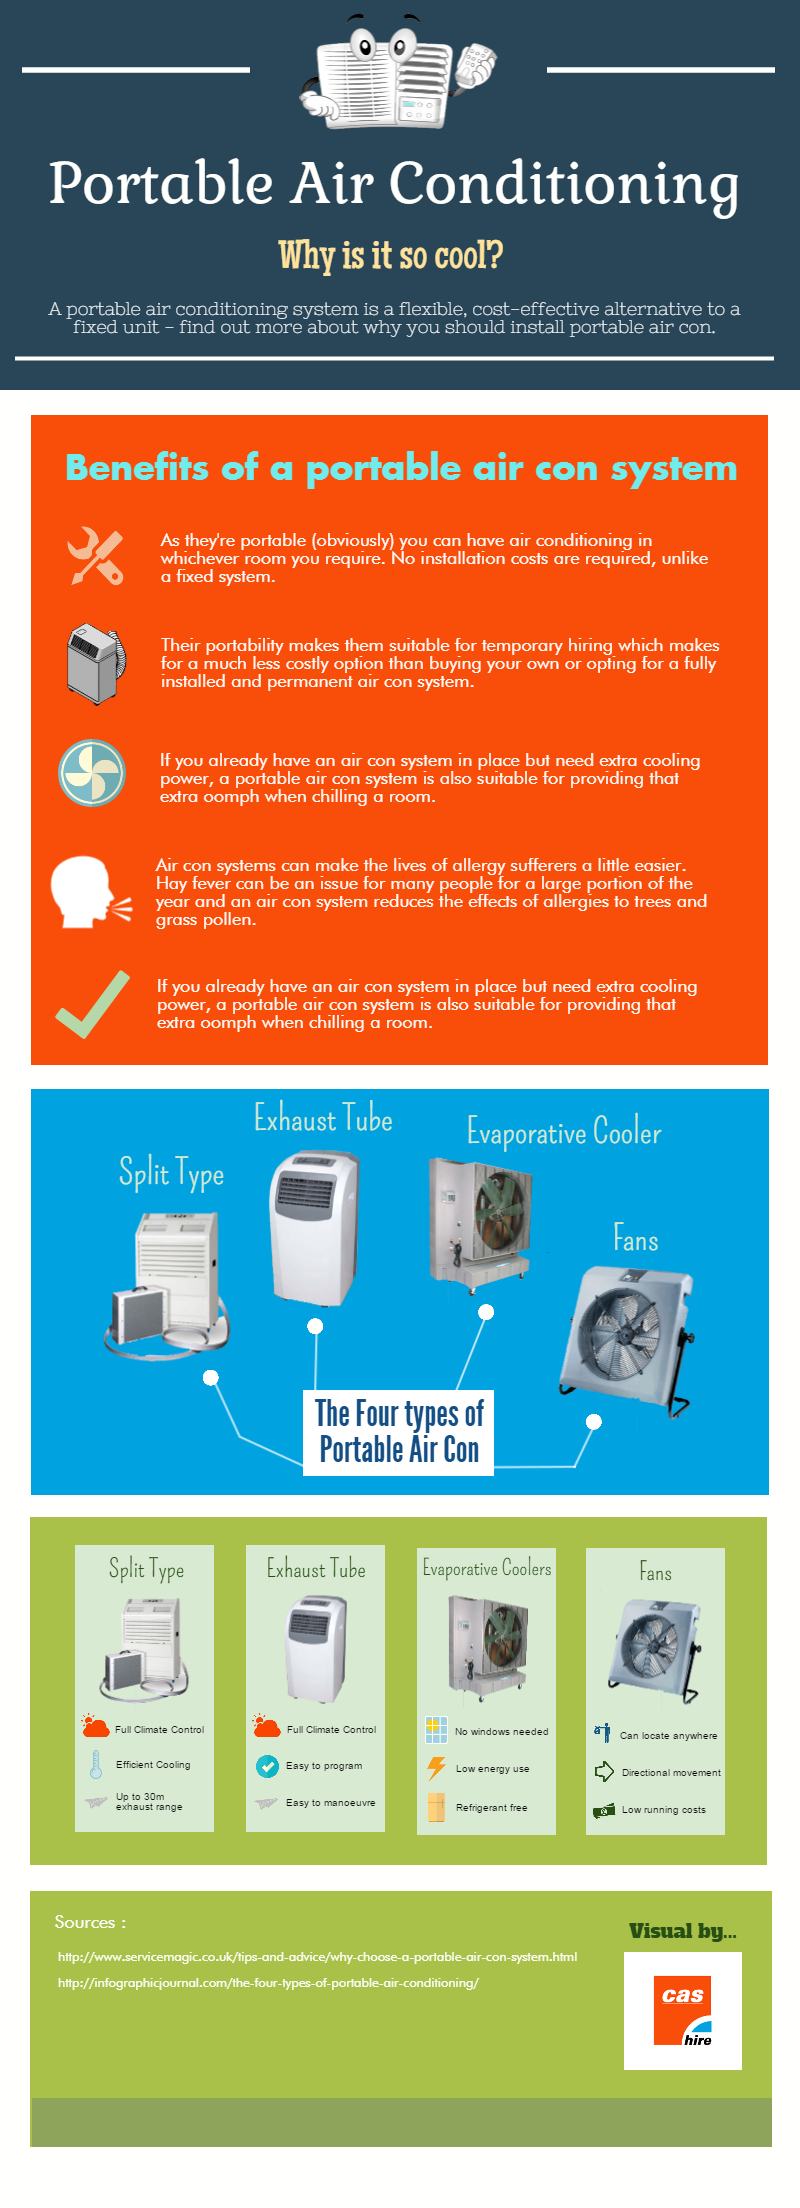 Why Air Conditioning Is So Cool [Infographic] Portable